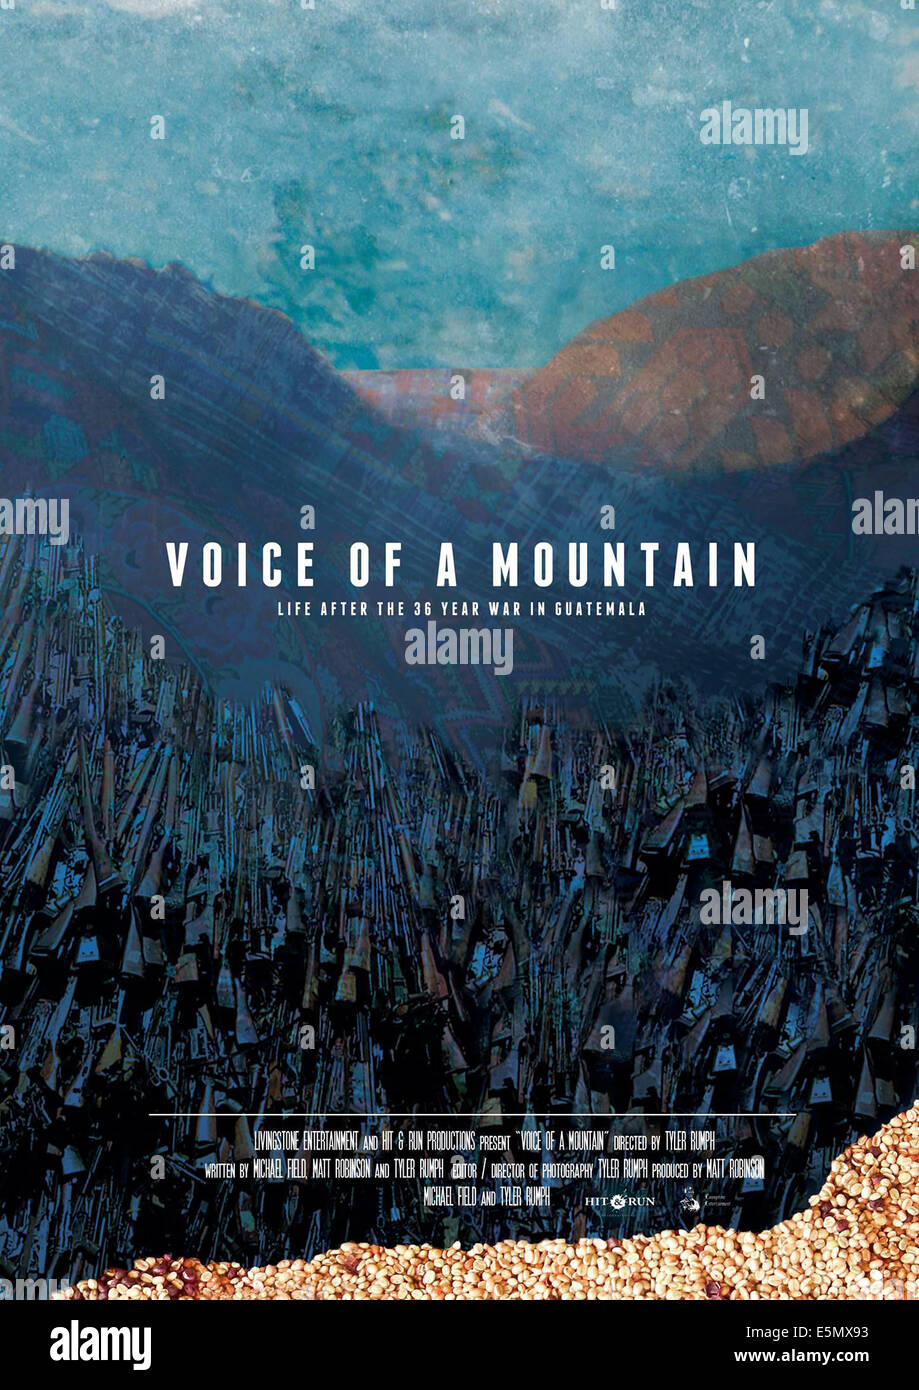 VOICE OF A MOUNTAIN, international poster art, 2008 - Stock Image